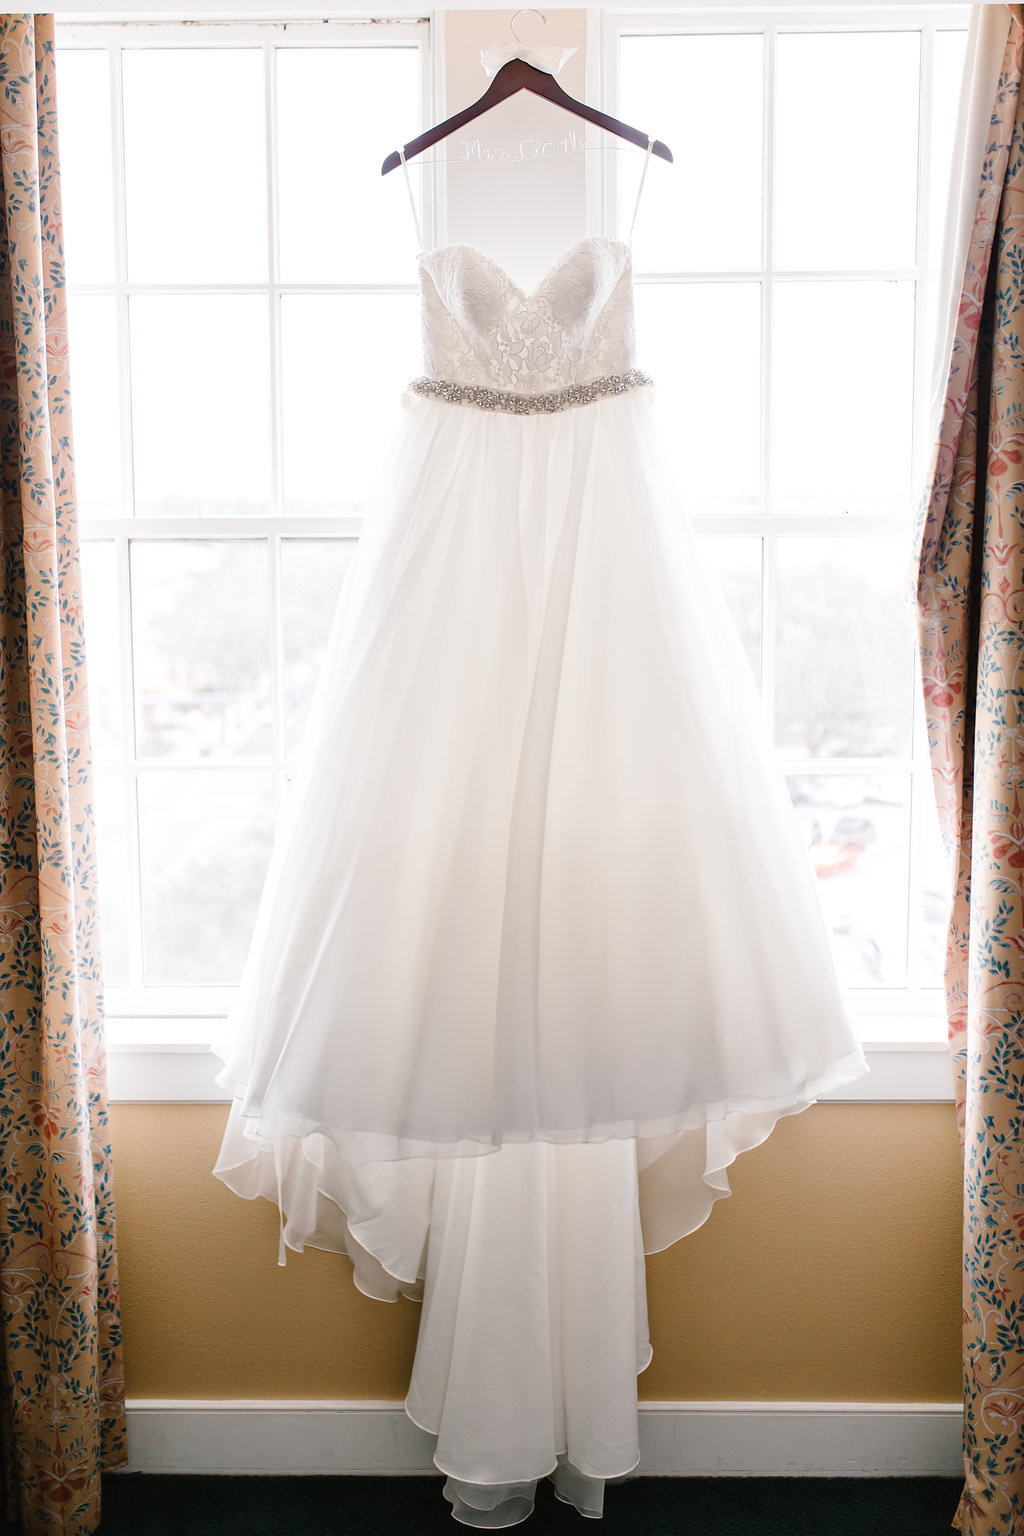 Sweetheart Strapless Lace Bodice and Organza and Tulle Ball Gown Skirt with Rhinestone Belt Essense of Australia Wedding Dress